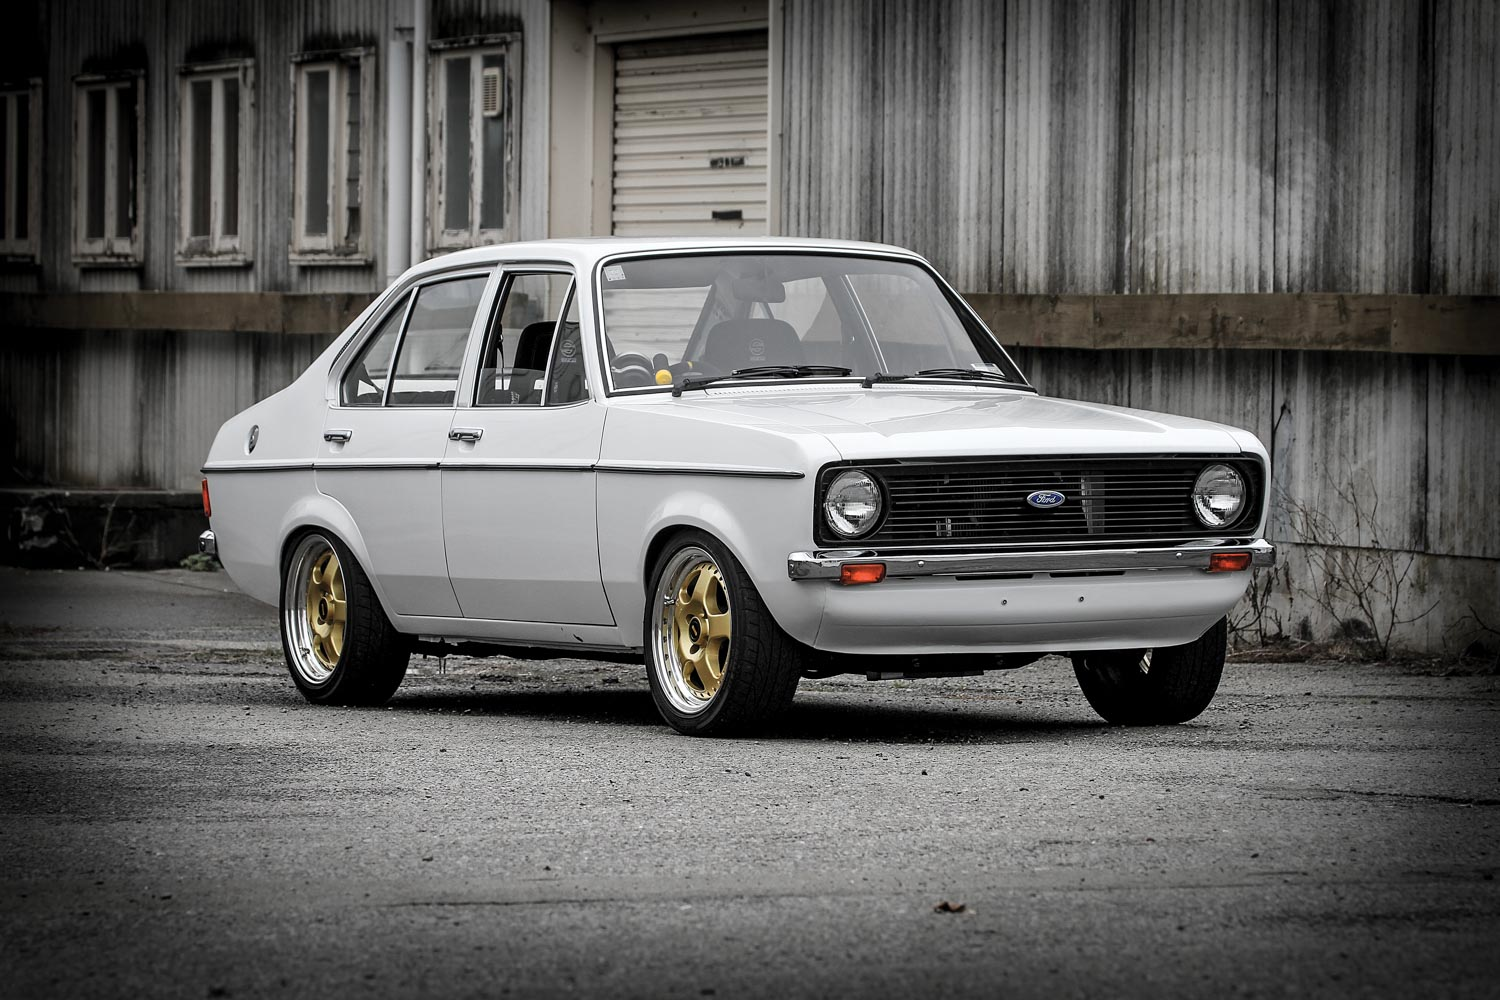 Schoolyard dreams: 1980 Ford Escort Mk2 — The Motorhood